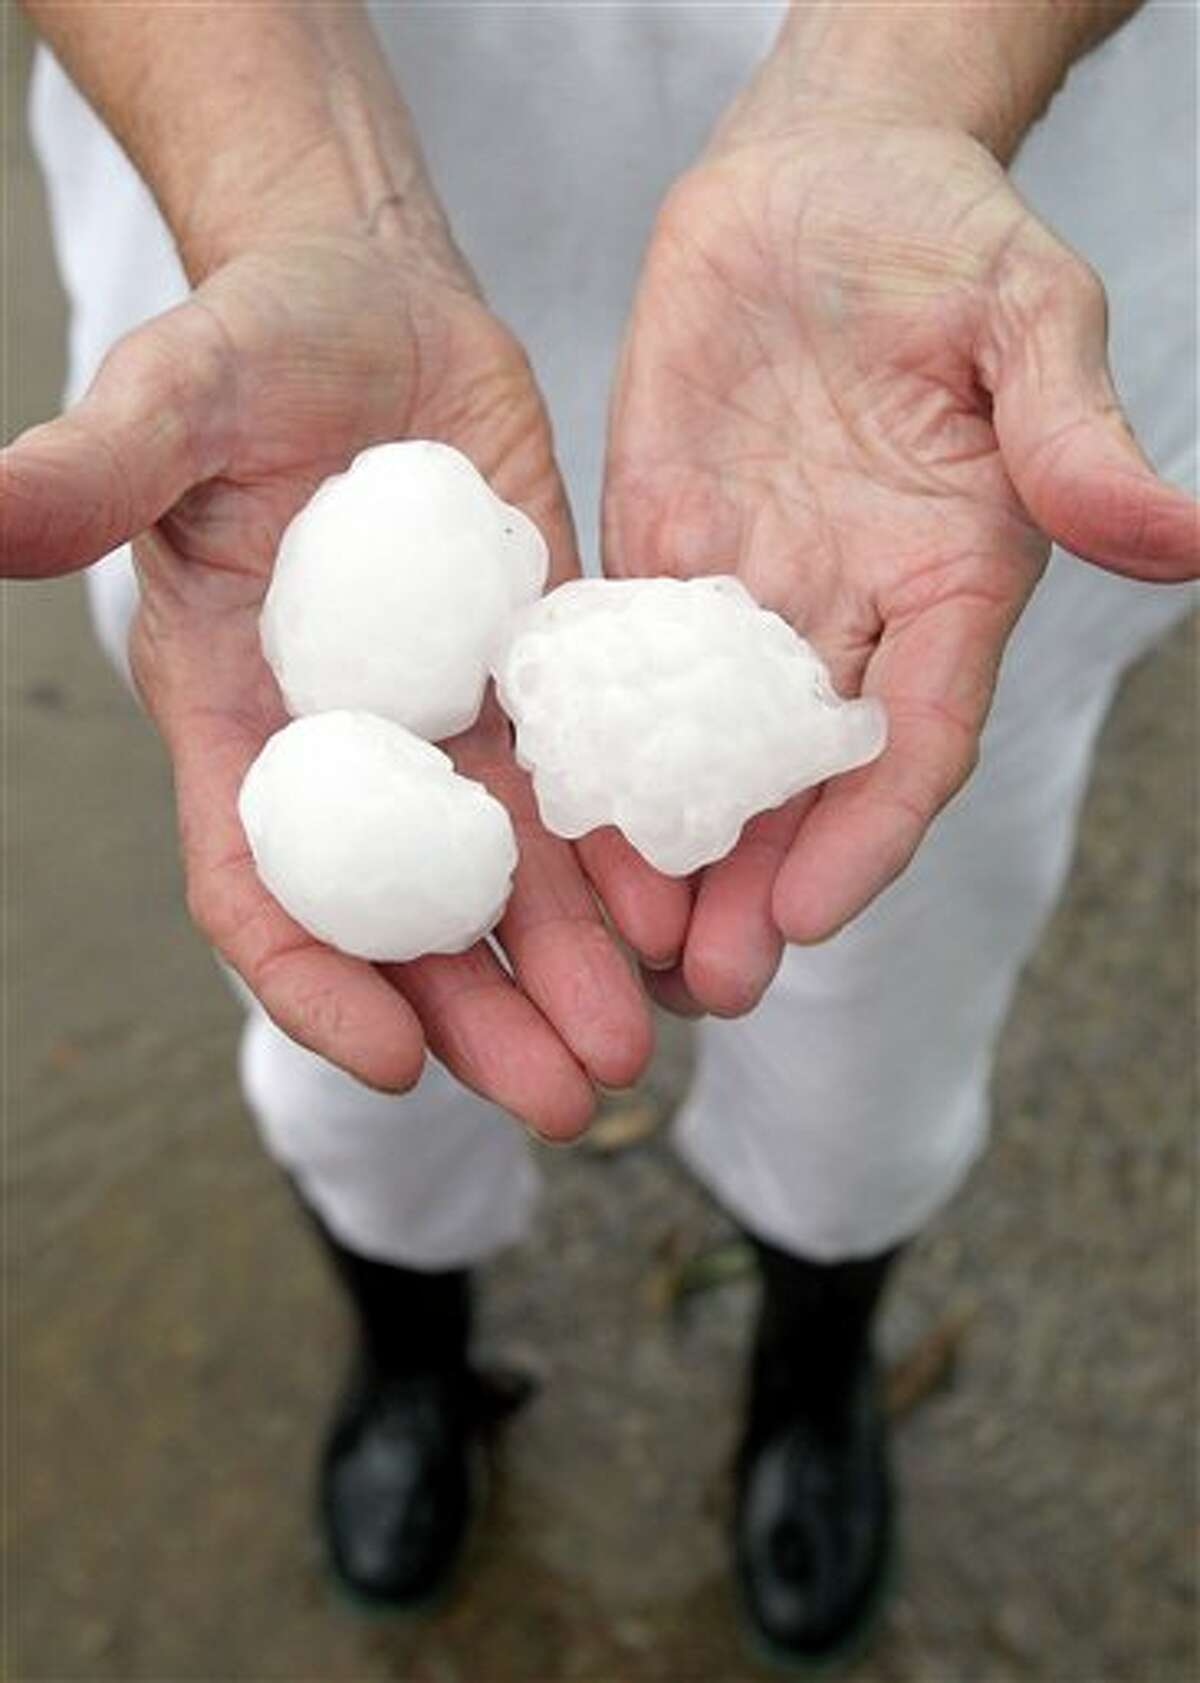 Melba Baker holds some of the golf ball plus size hail that fell at her home in Cunningham, Texas, Tuesday, April 3, 2012. Two large super cell thunderstorms brought heavy rain and damaging winds to North East Texas as well as tornadoes in the Dallas and Fort Woth area. (AP Photo/The Paris News, Sam Craft)